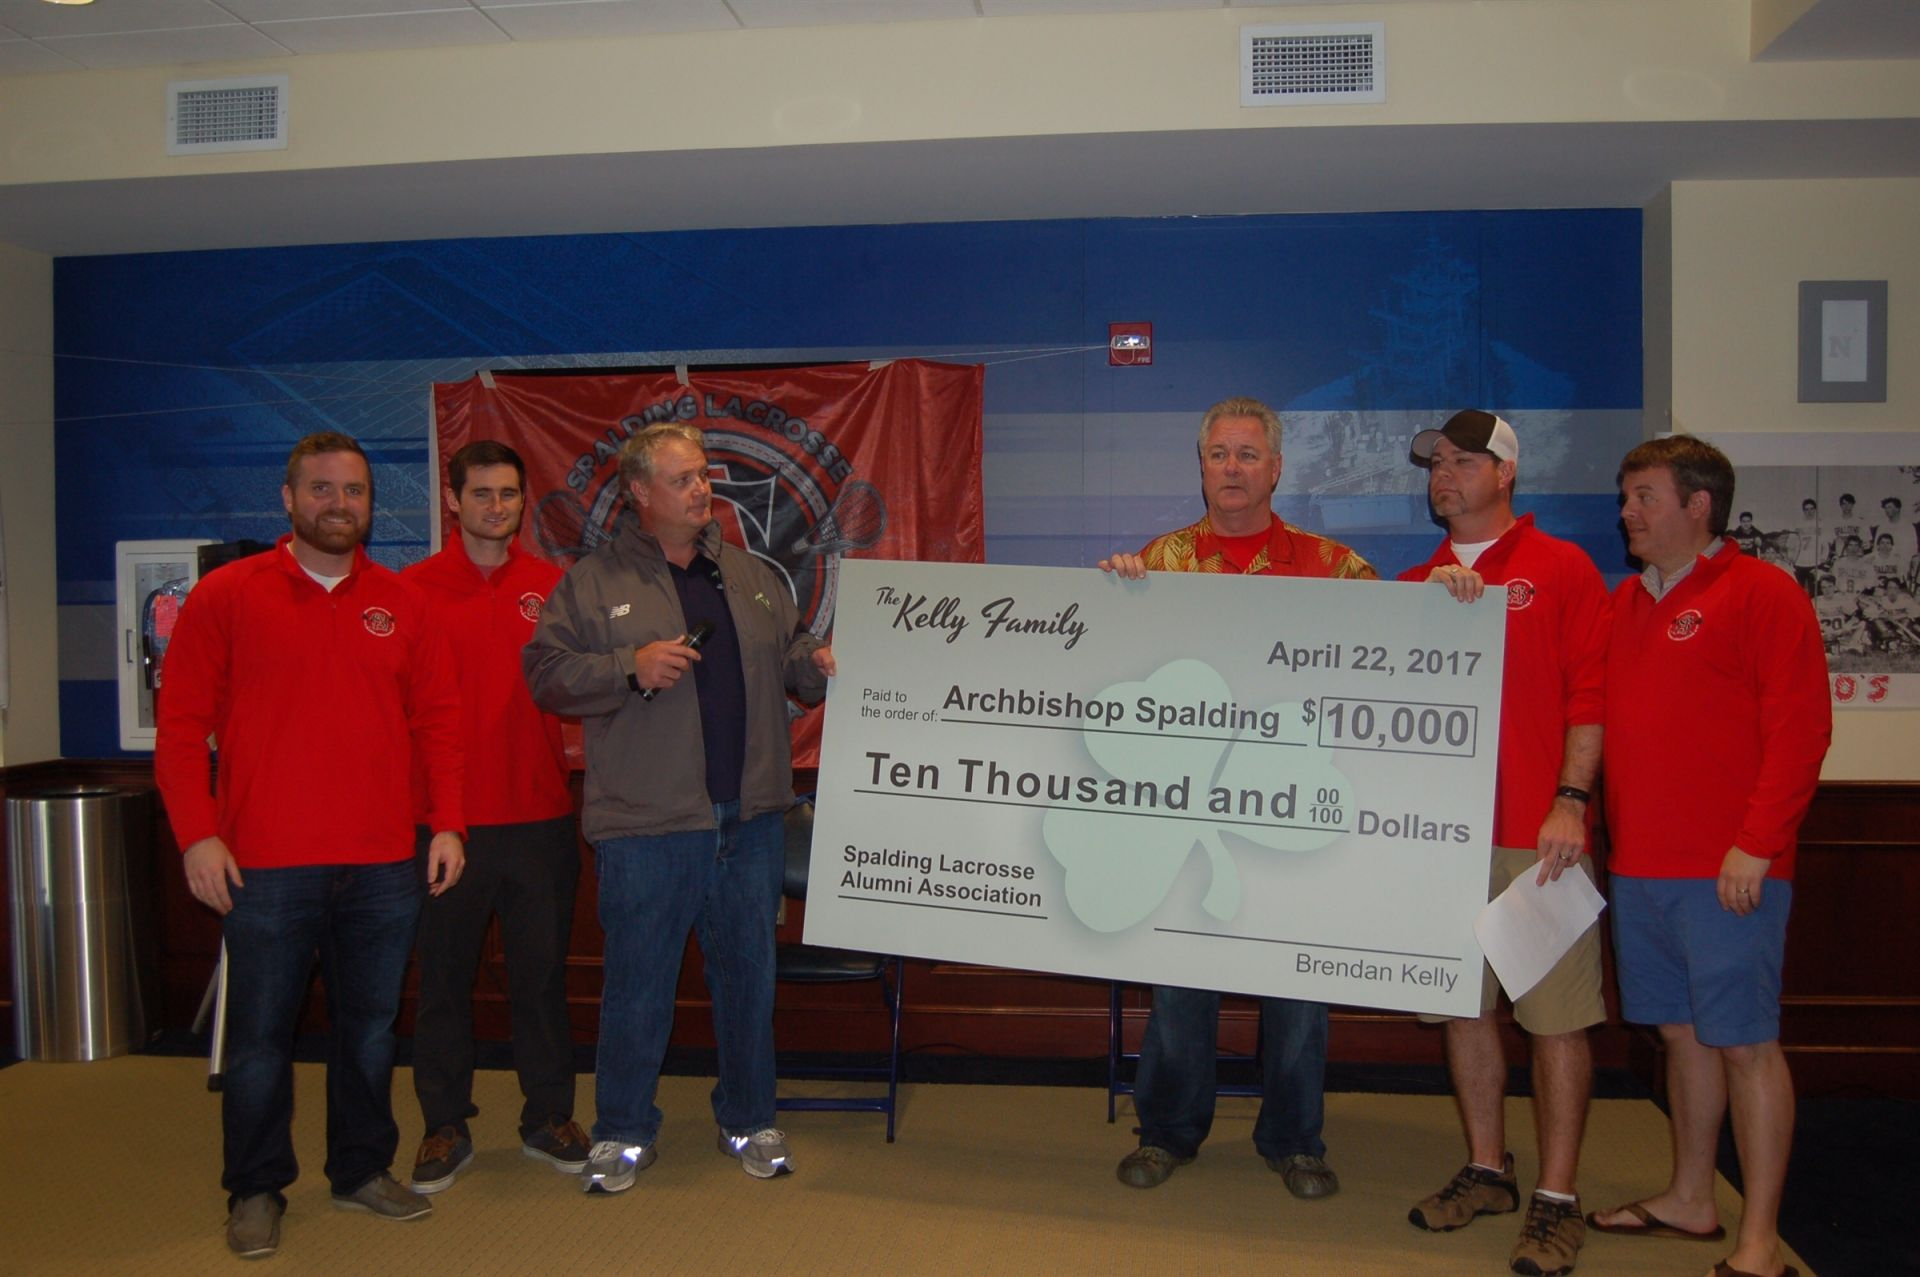 The Kelly family presented a $10,000 check to the SLAA